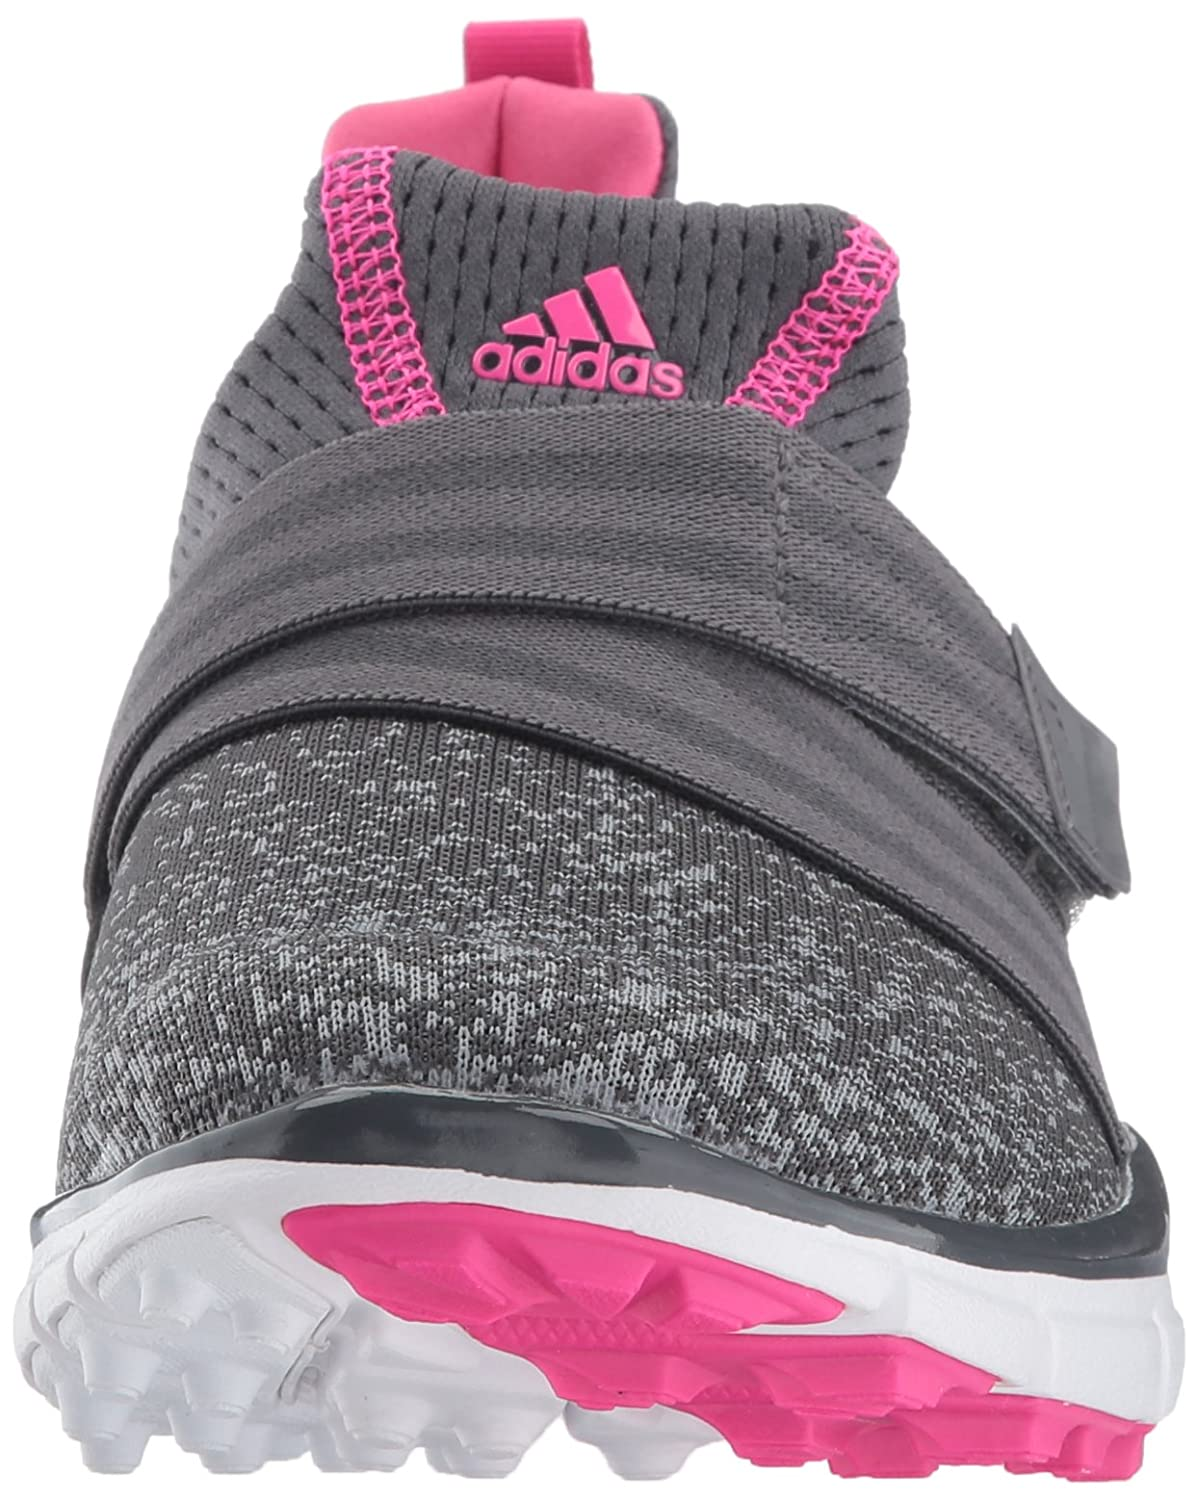 adidas Women's W Climacool Knit Golf US|Grey/Shock Shoe B01N30KPJG 5 B(M) US|Grey/Shock Golf Pink 4c84ea